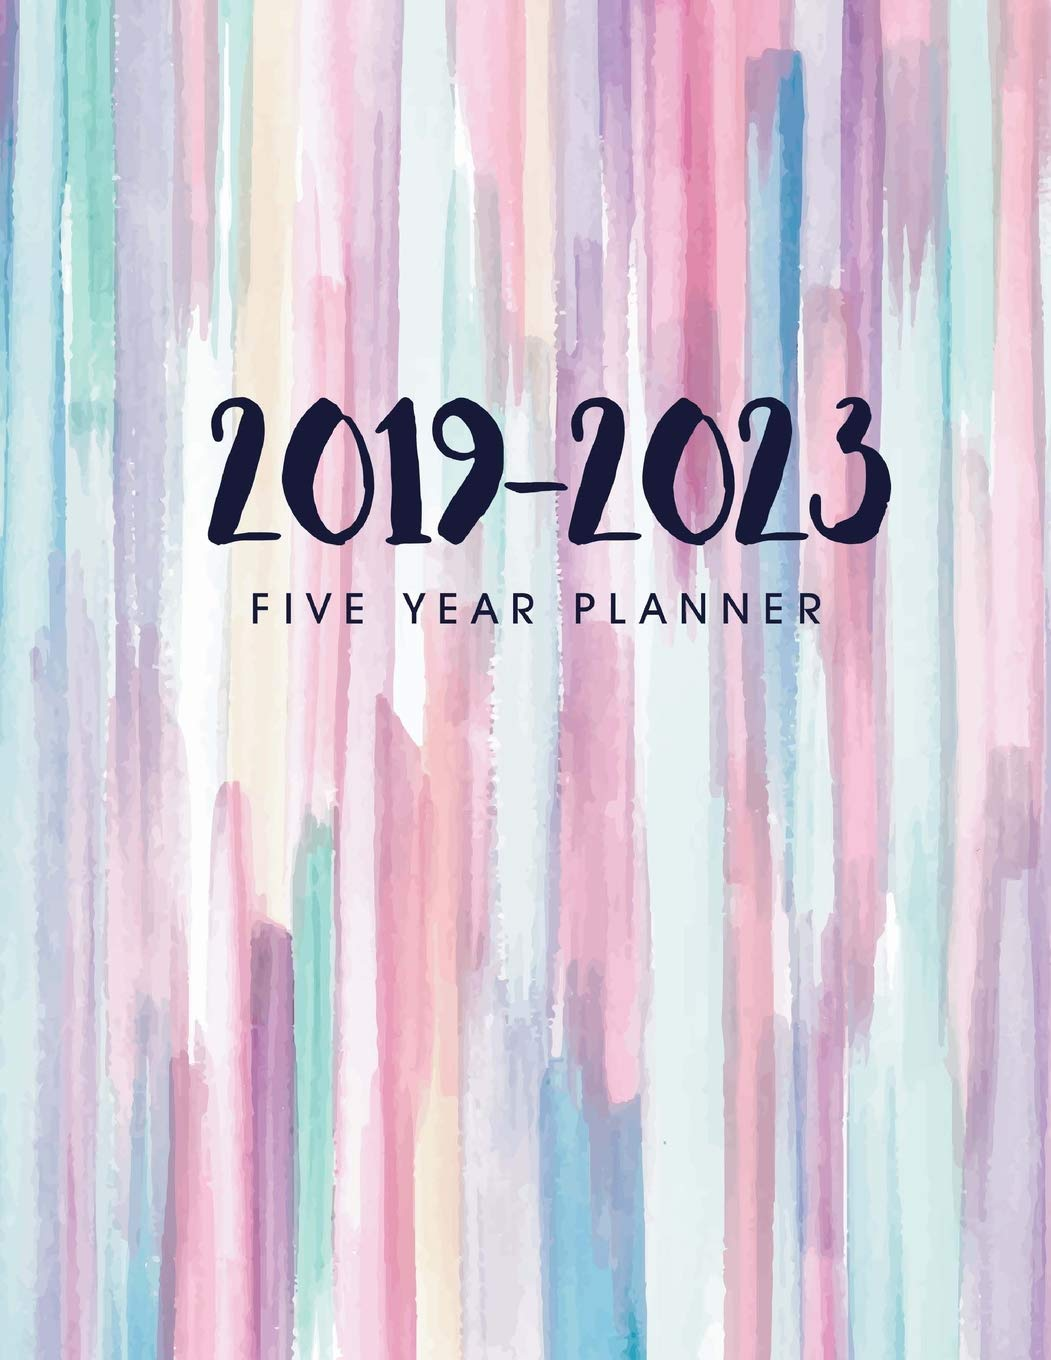 2019-2023 Five Year Planner: Daily Planner Five Year, Agenda ...